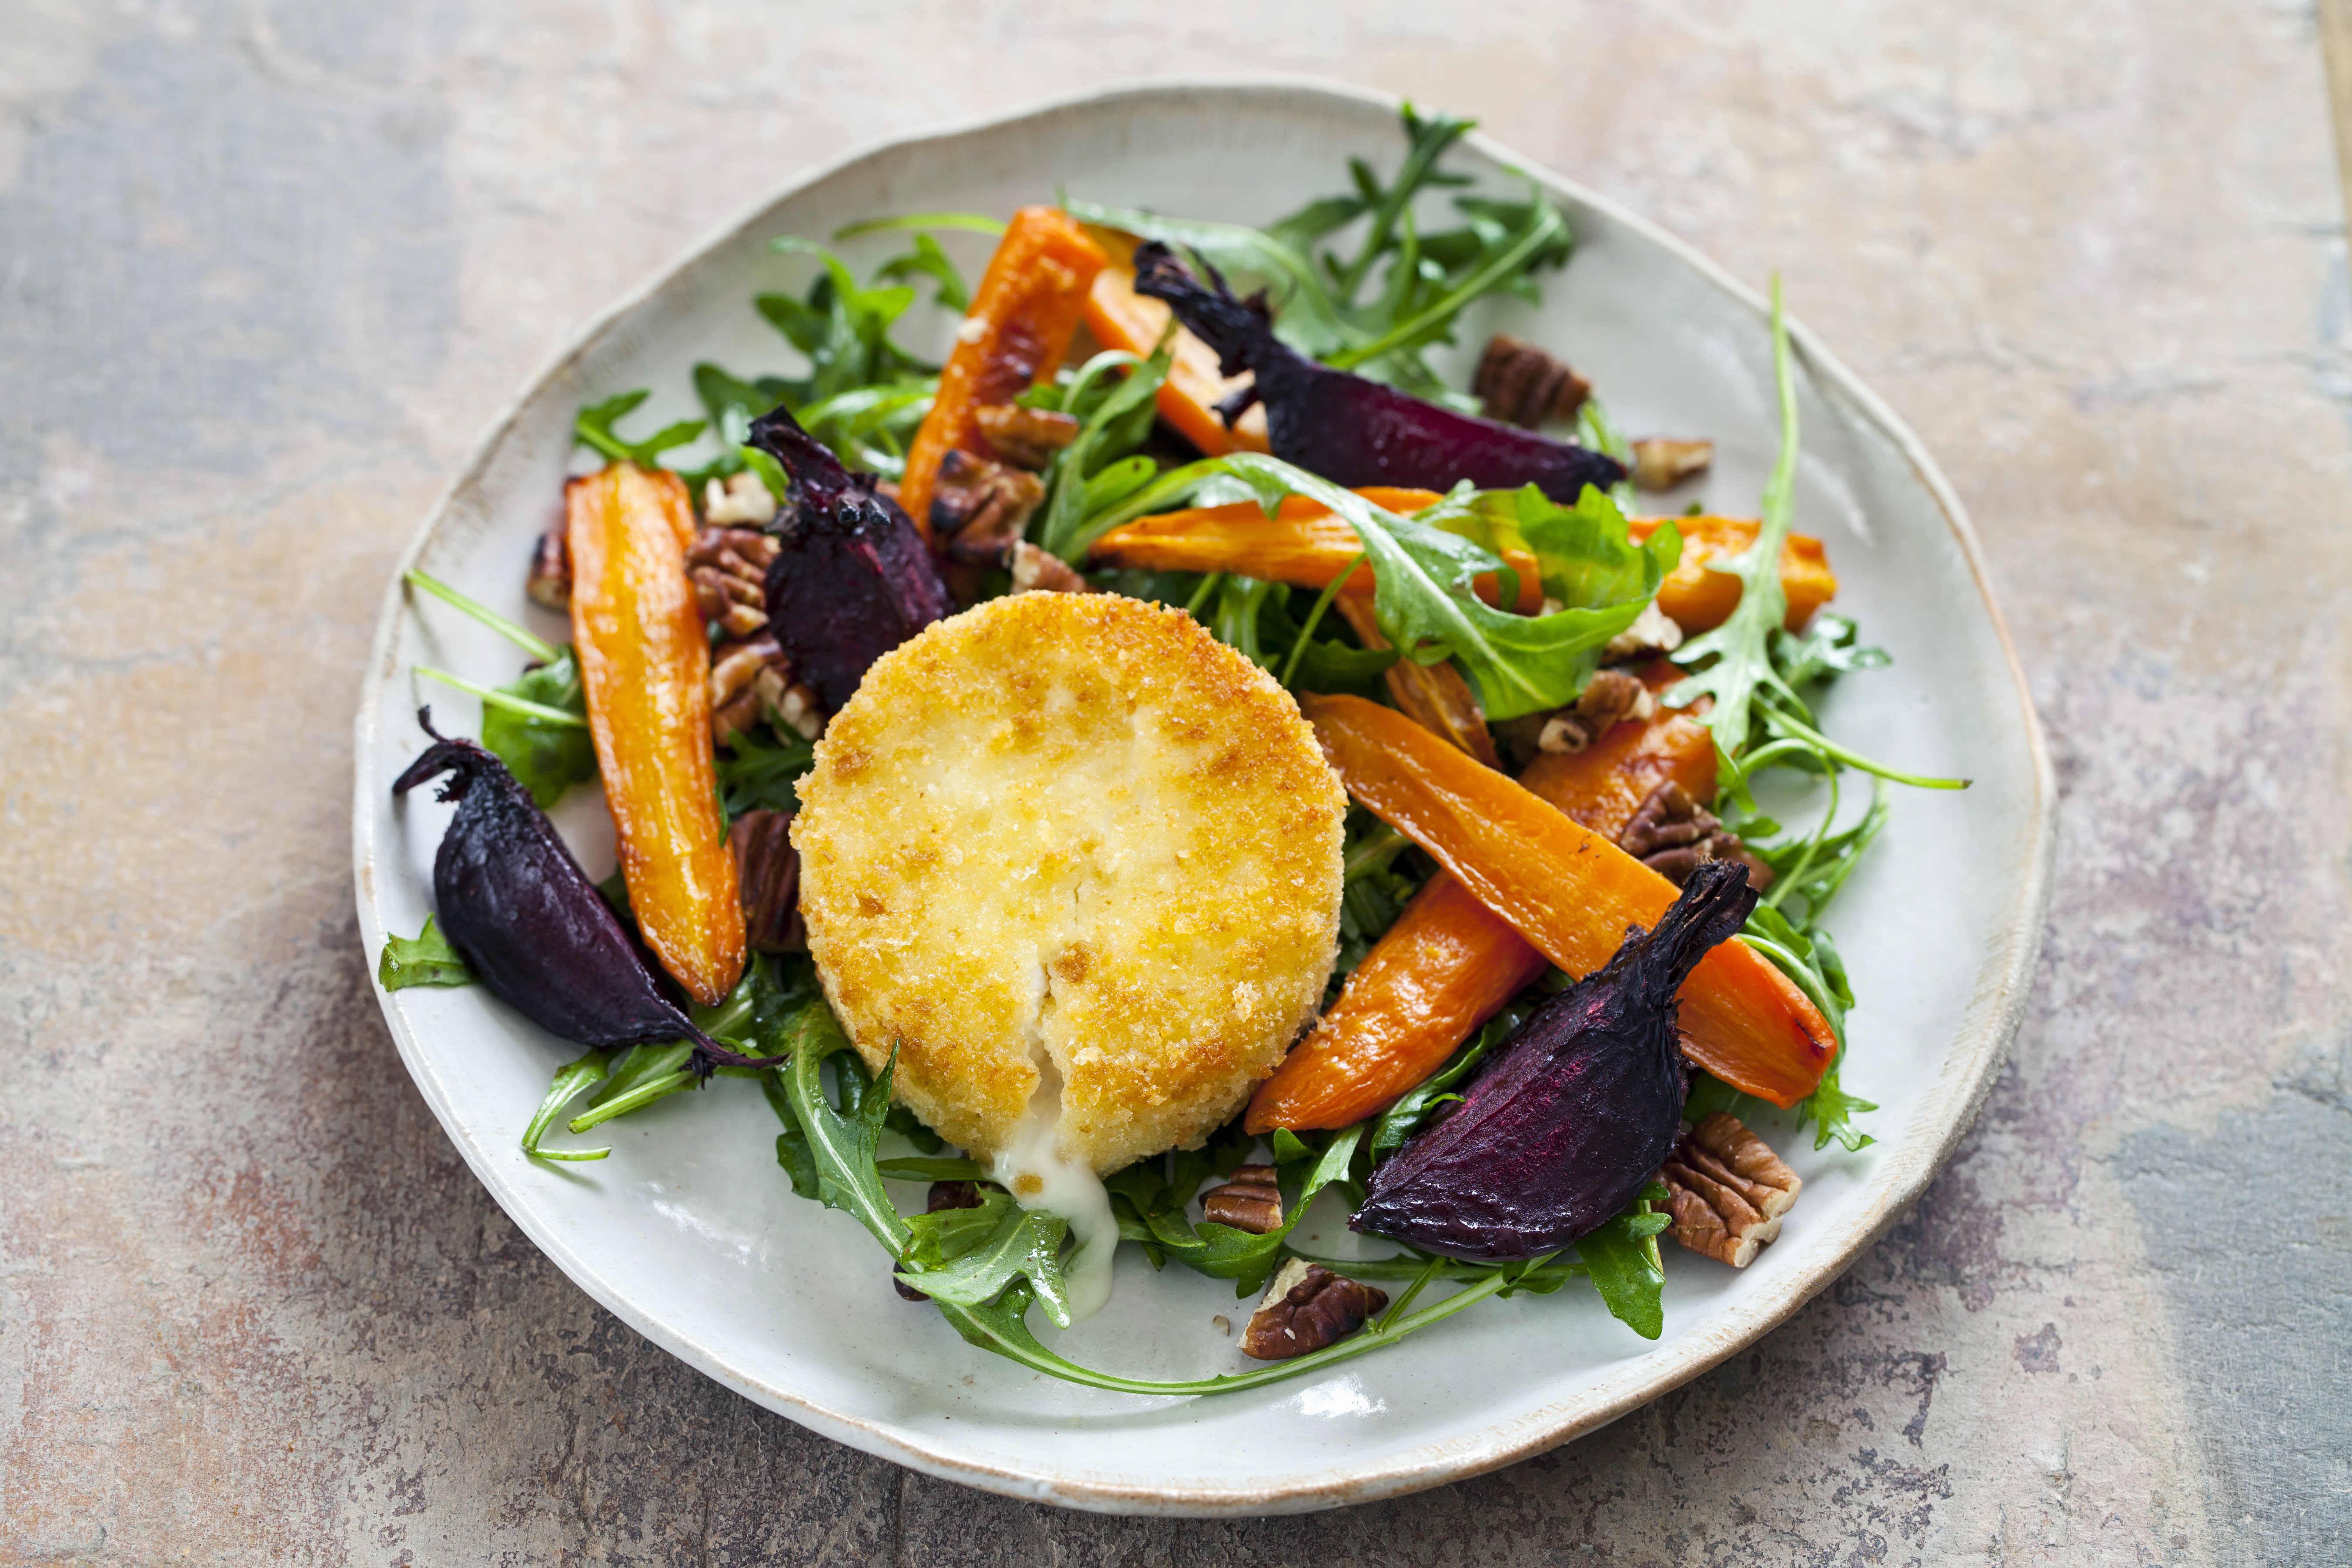 Baked Goats Cheese with Roasted Beetroot and Carrot Salad